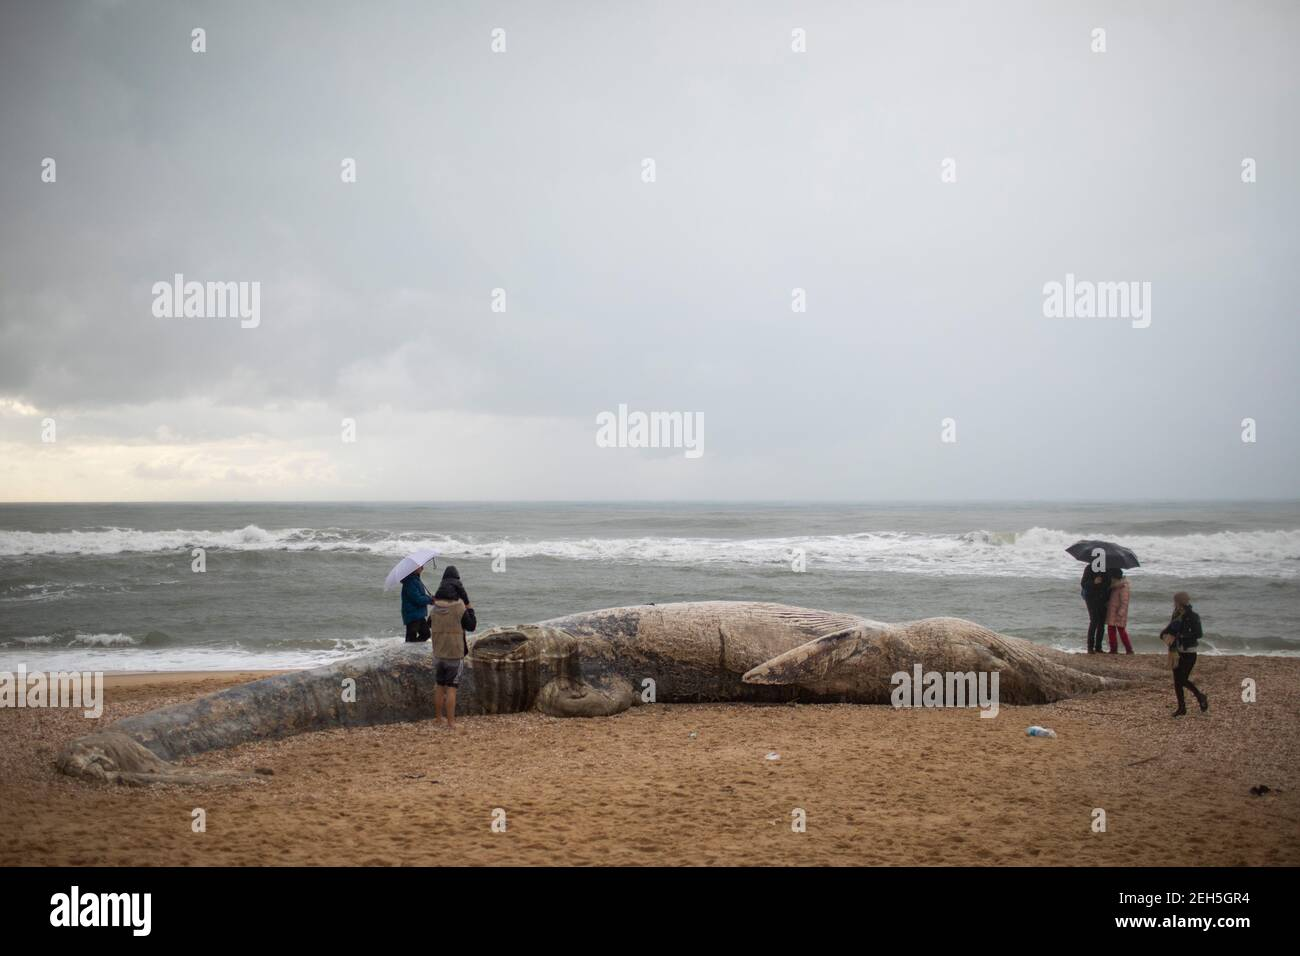 Nitzanim Reserve, Israel. 19th Feb, 2021. People observe a dead fin whale calf that washed up on a beach south of Tel Aviv. According to Israeli officials, it wasn't clear what caused the death. Credit: Ilia Yefimovich/dpa/Alamy Live News Stock Photo